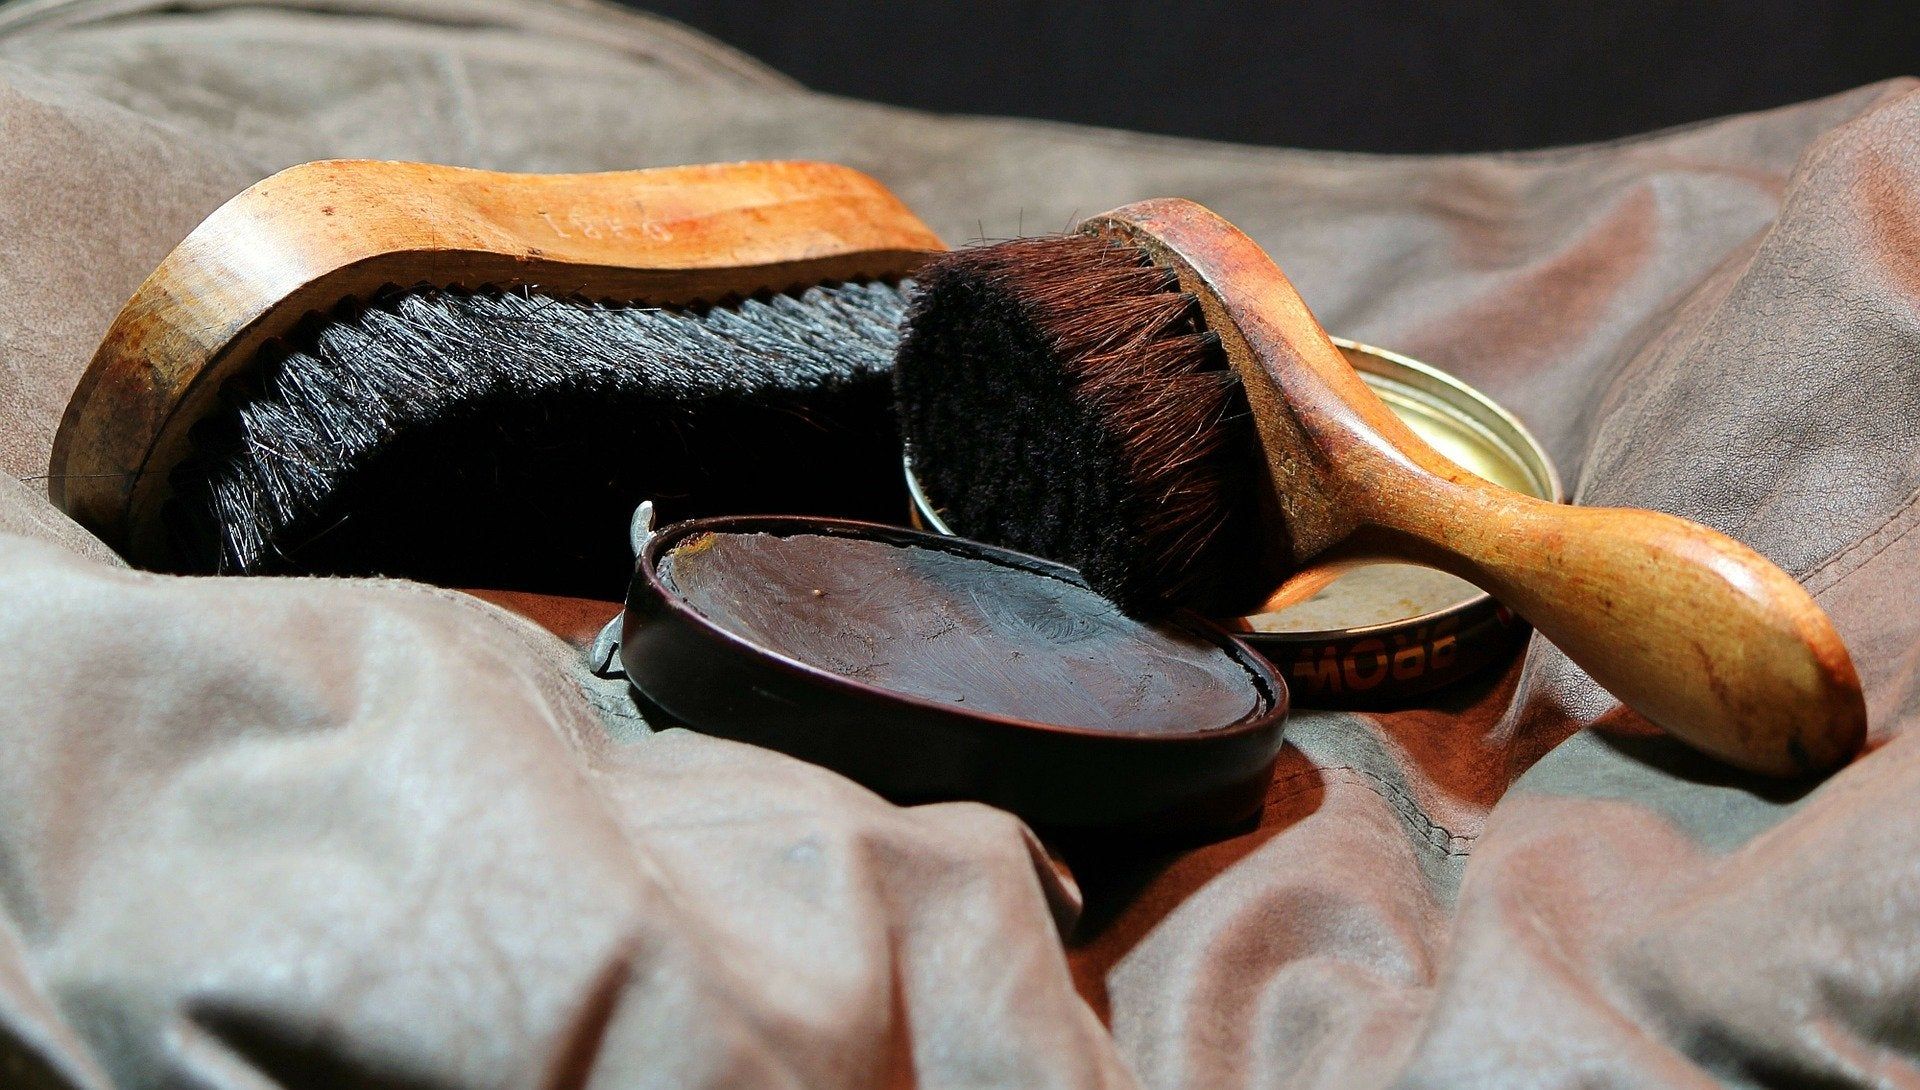 NUX tipps leather care